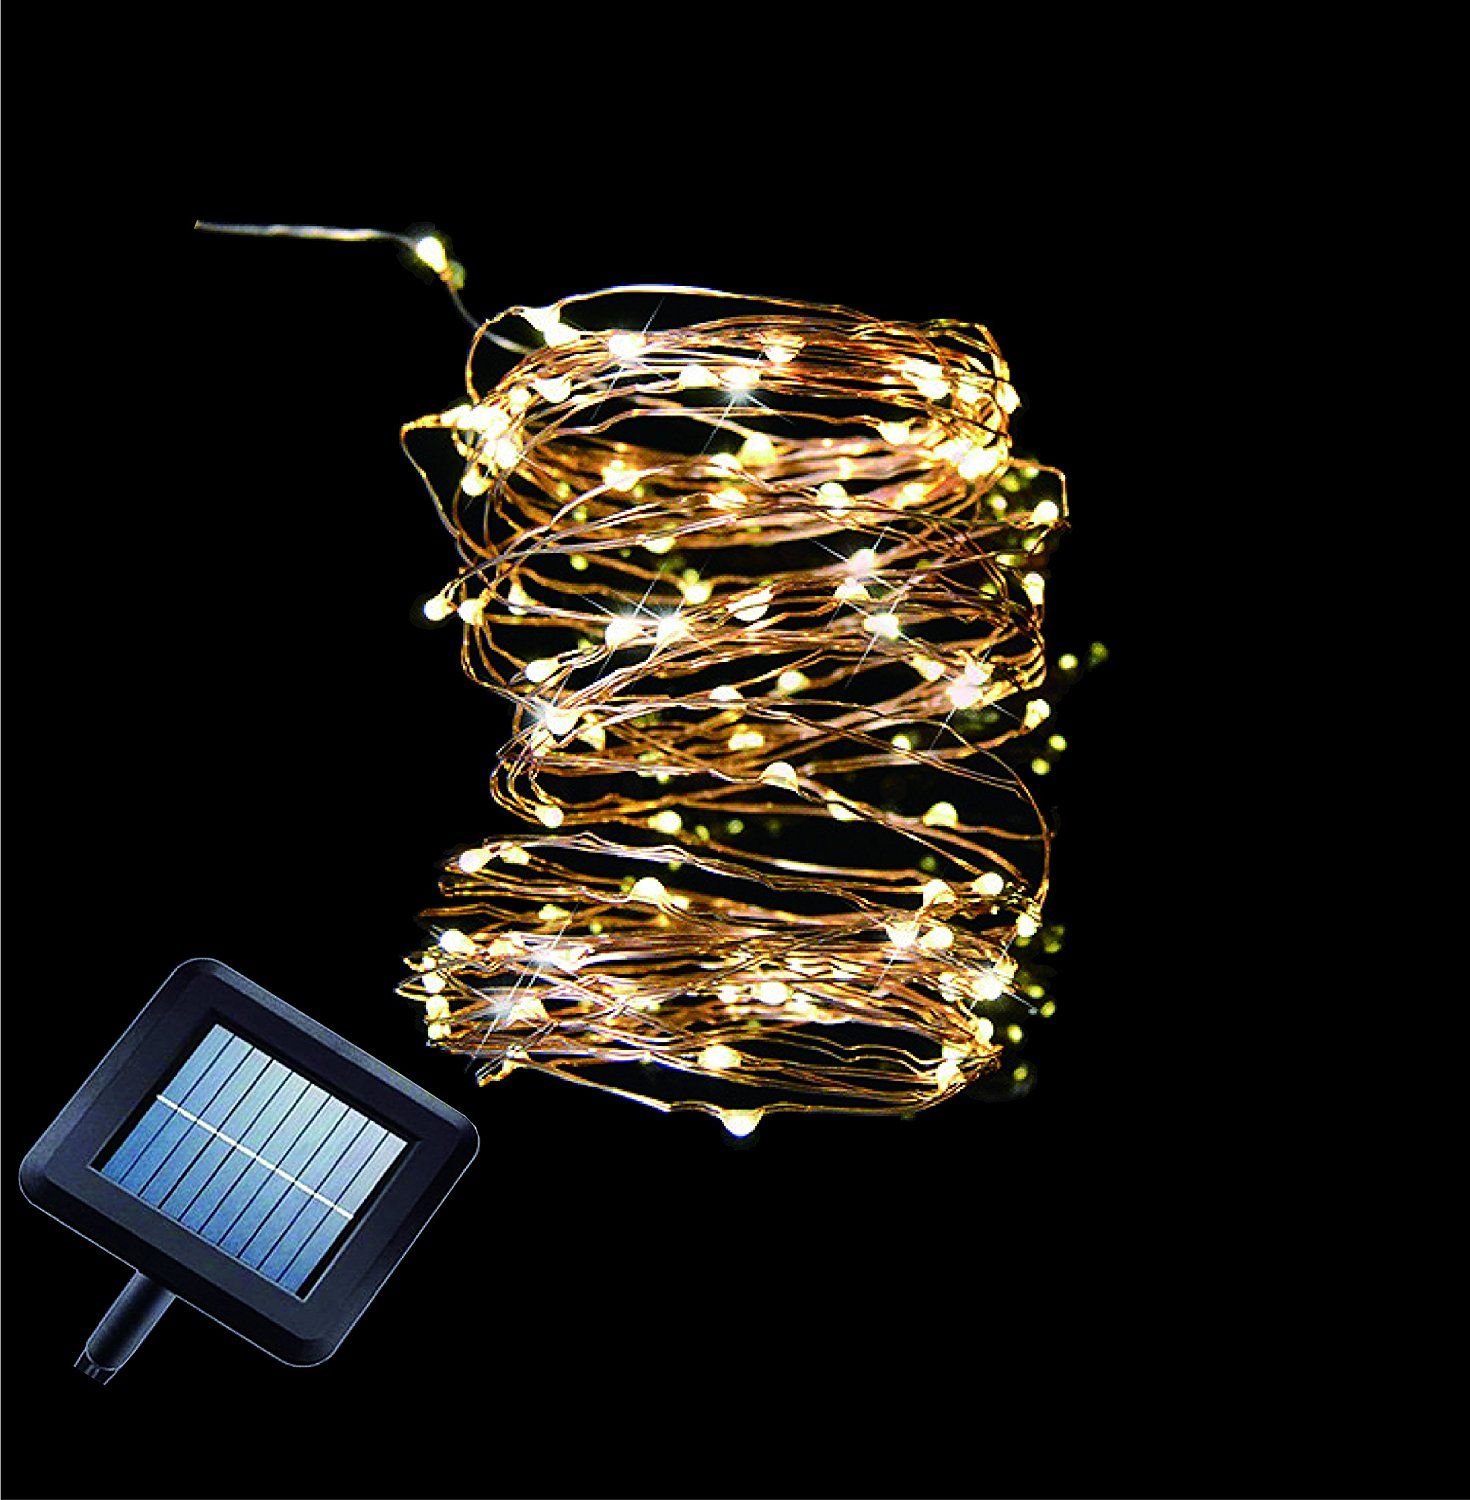 Solar Led String Garden Lights : Solar lights outdoor String Lights - Led Christmas Lights, 33 ft Copper Wire, 100 LEDs solar ...